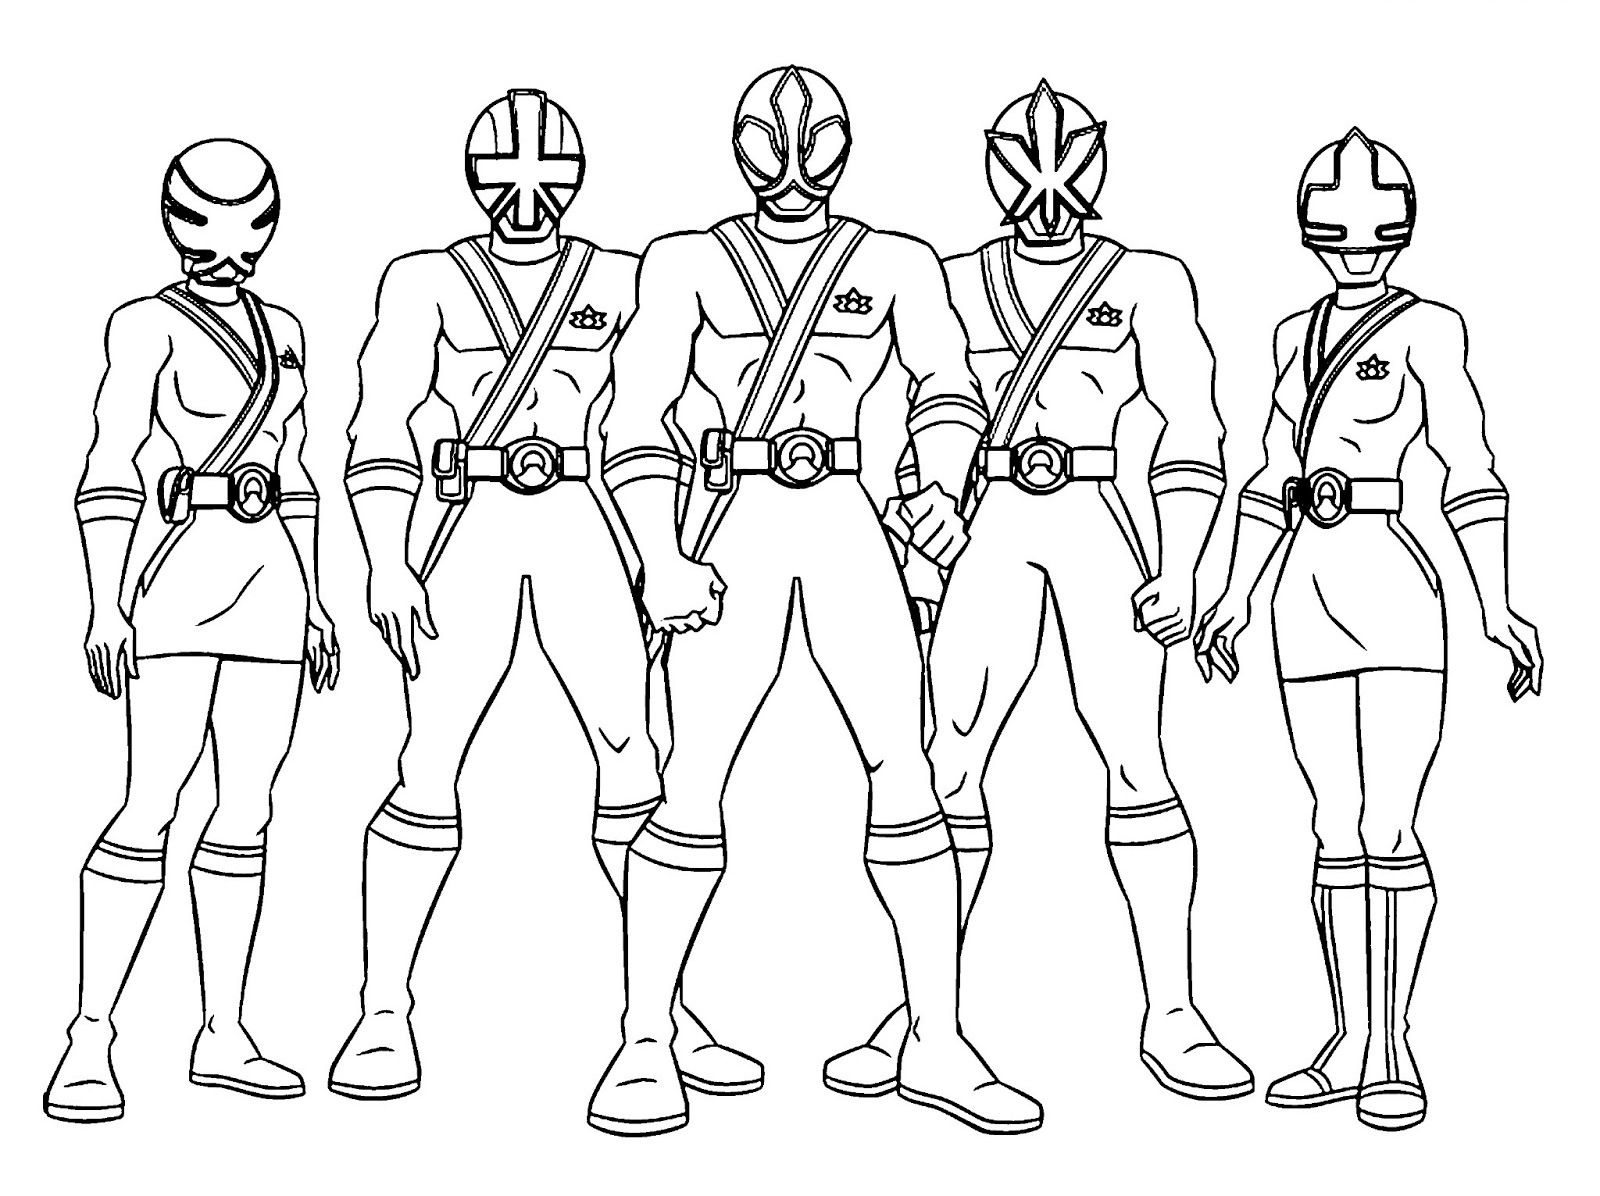 Best 25 power rangers coloring pages ideas on pinterest power rangers mask power rangers megaforce and power rangers sword